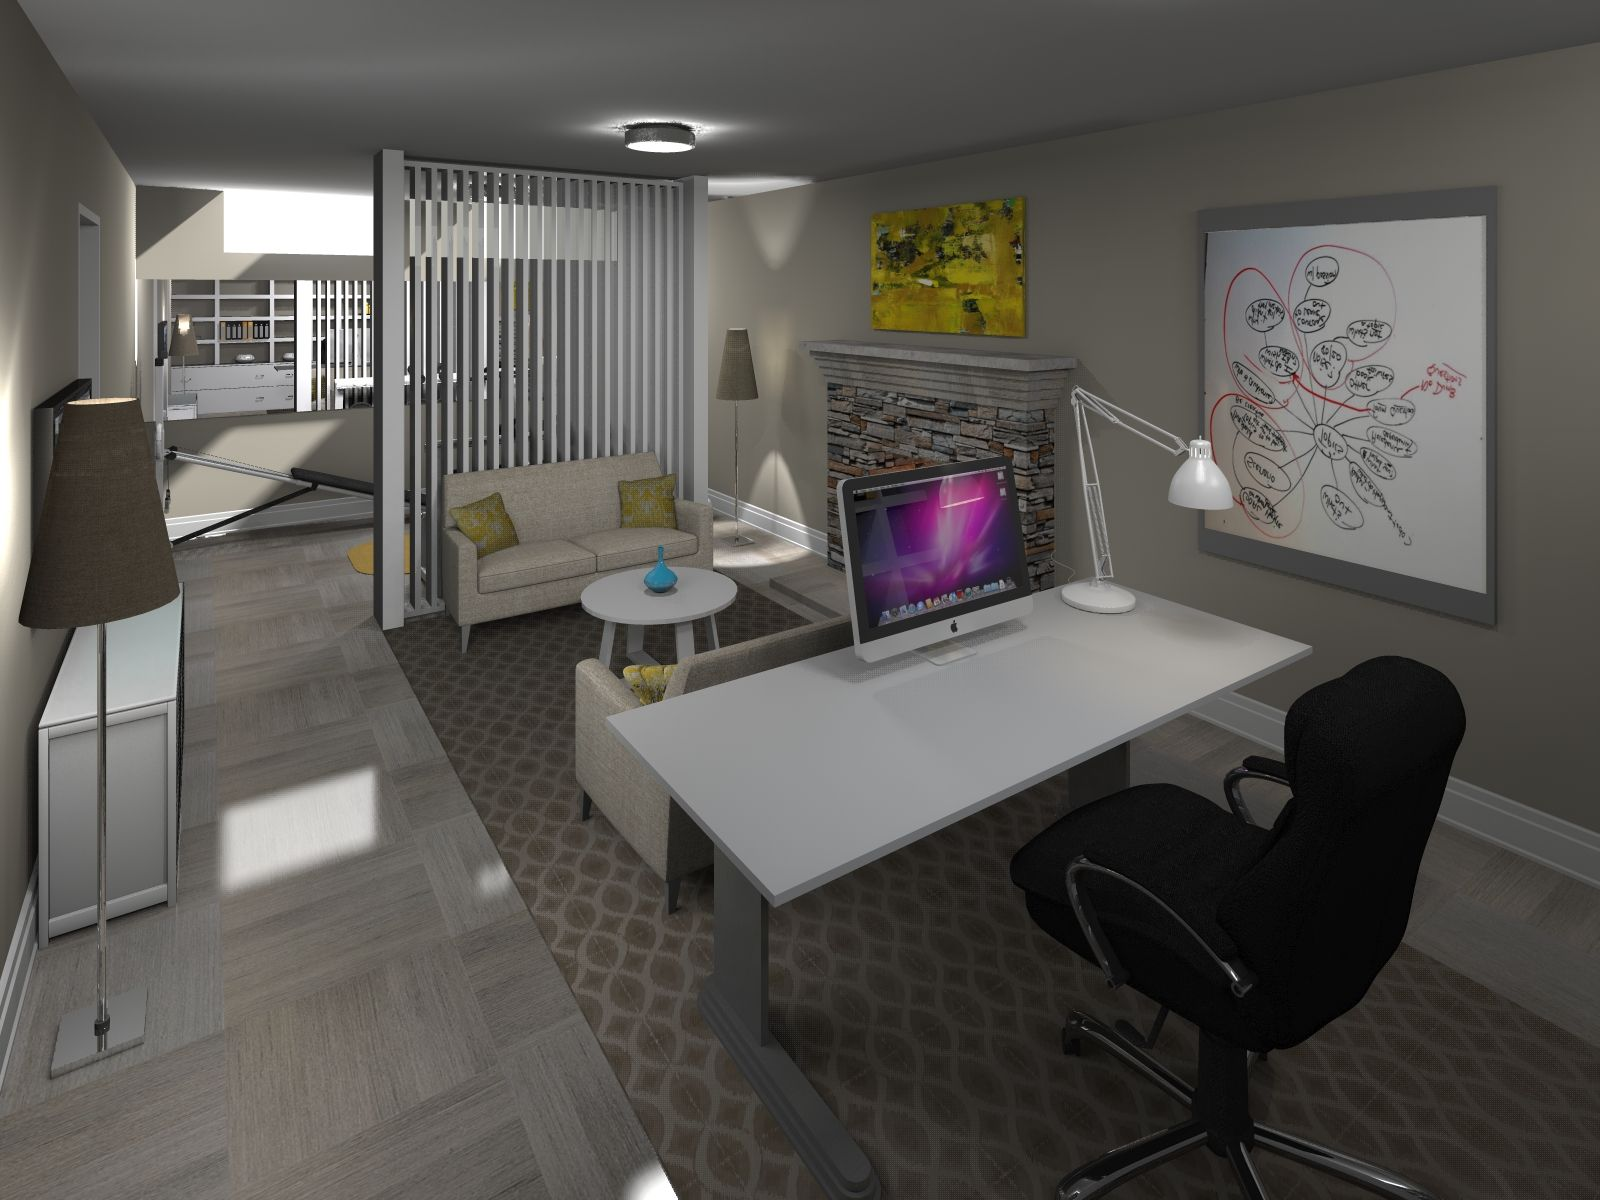 Basement Office Design Property designednemanja kovacevic - basement office / gym